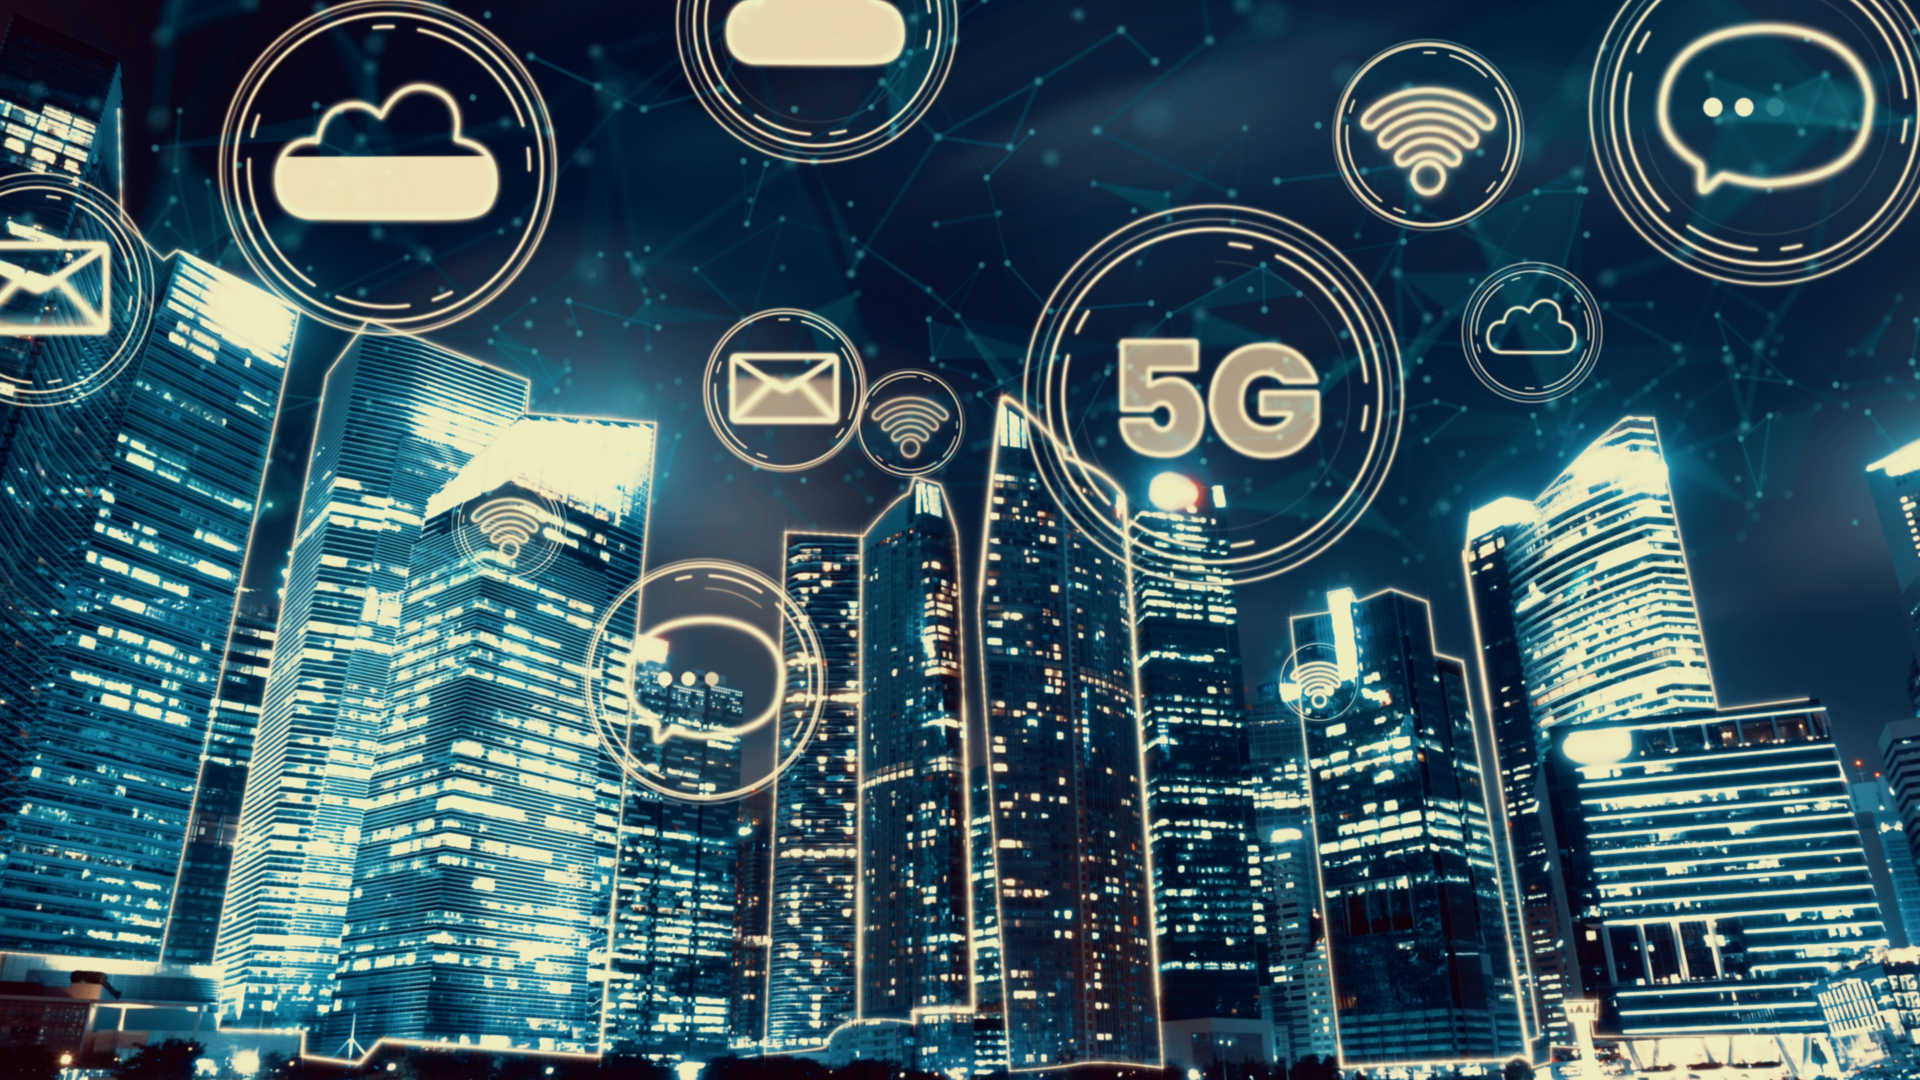 A hyperscale public cloud provider's role in operator networks and private 5G